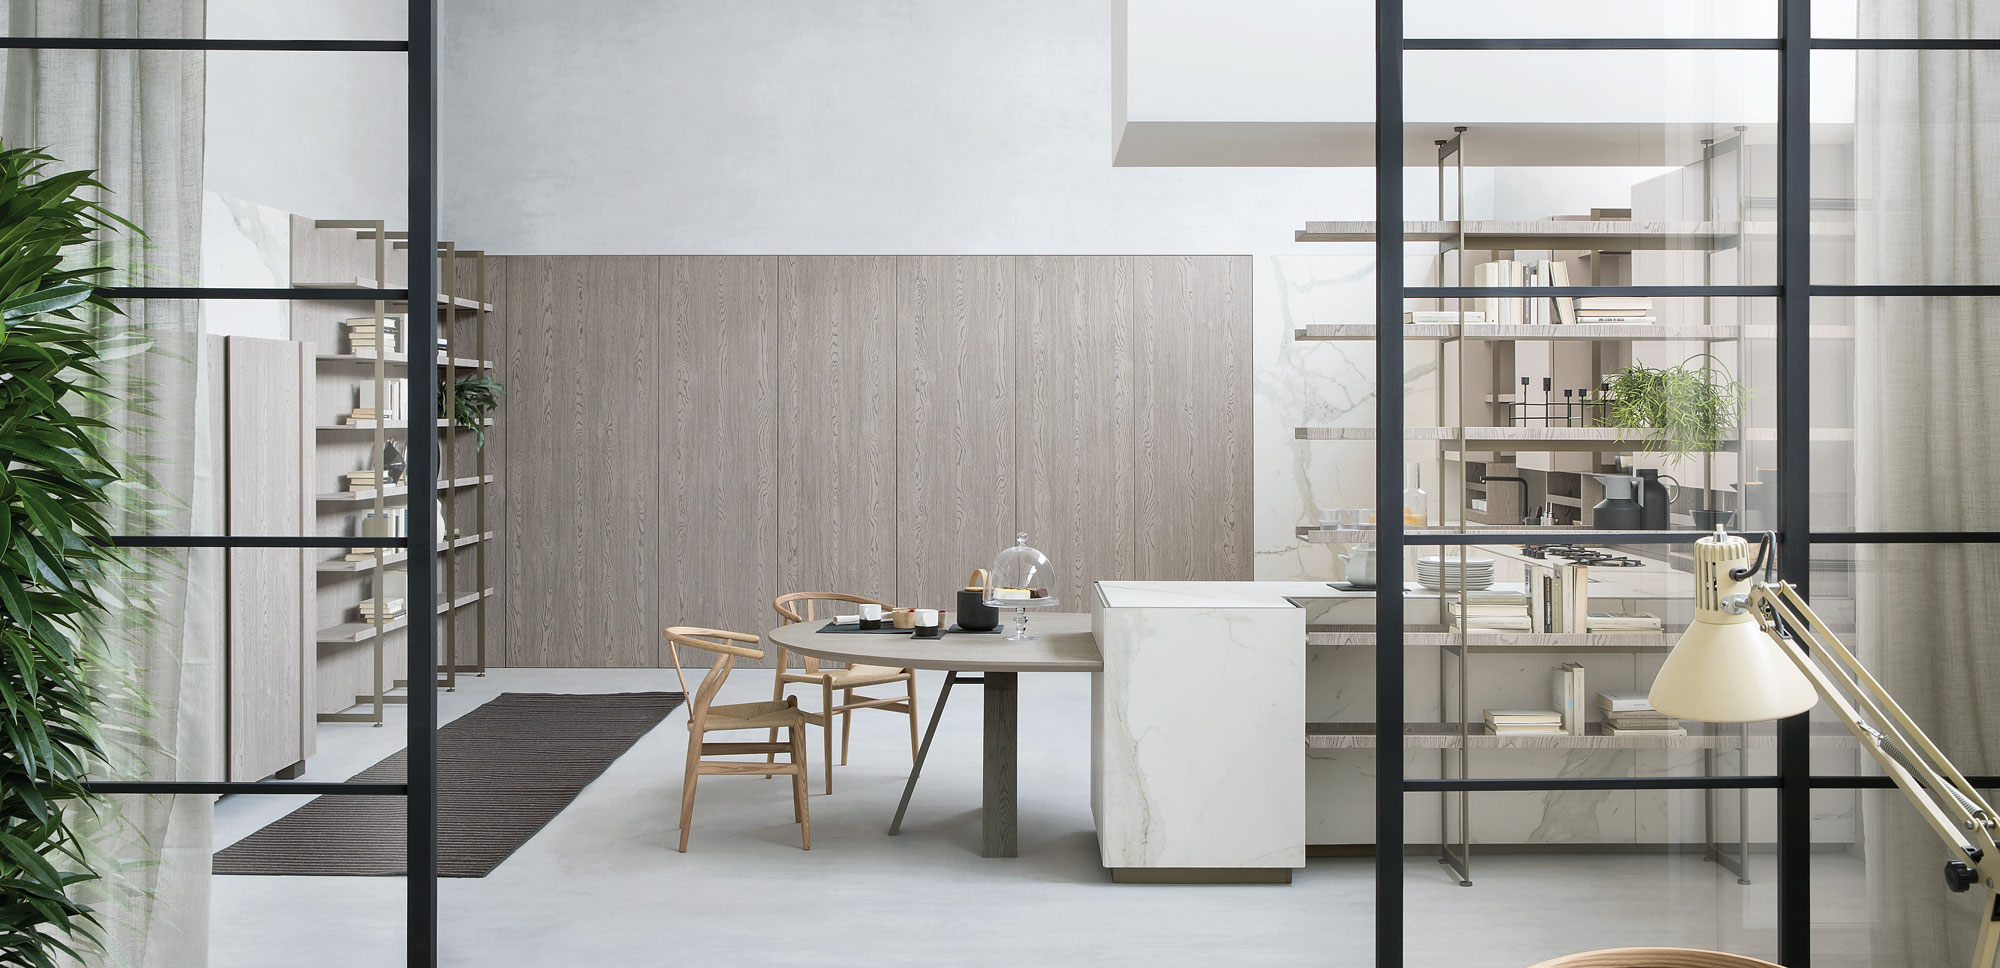 Luxury kitchen today, the new vision of luxury in the kitchen